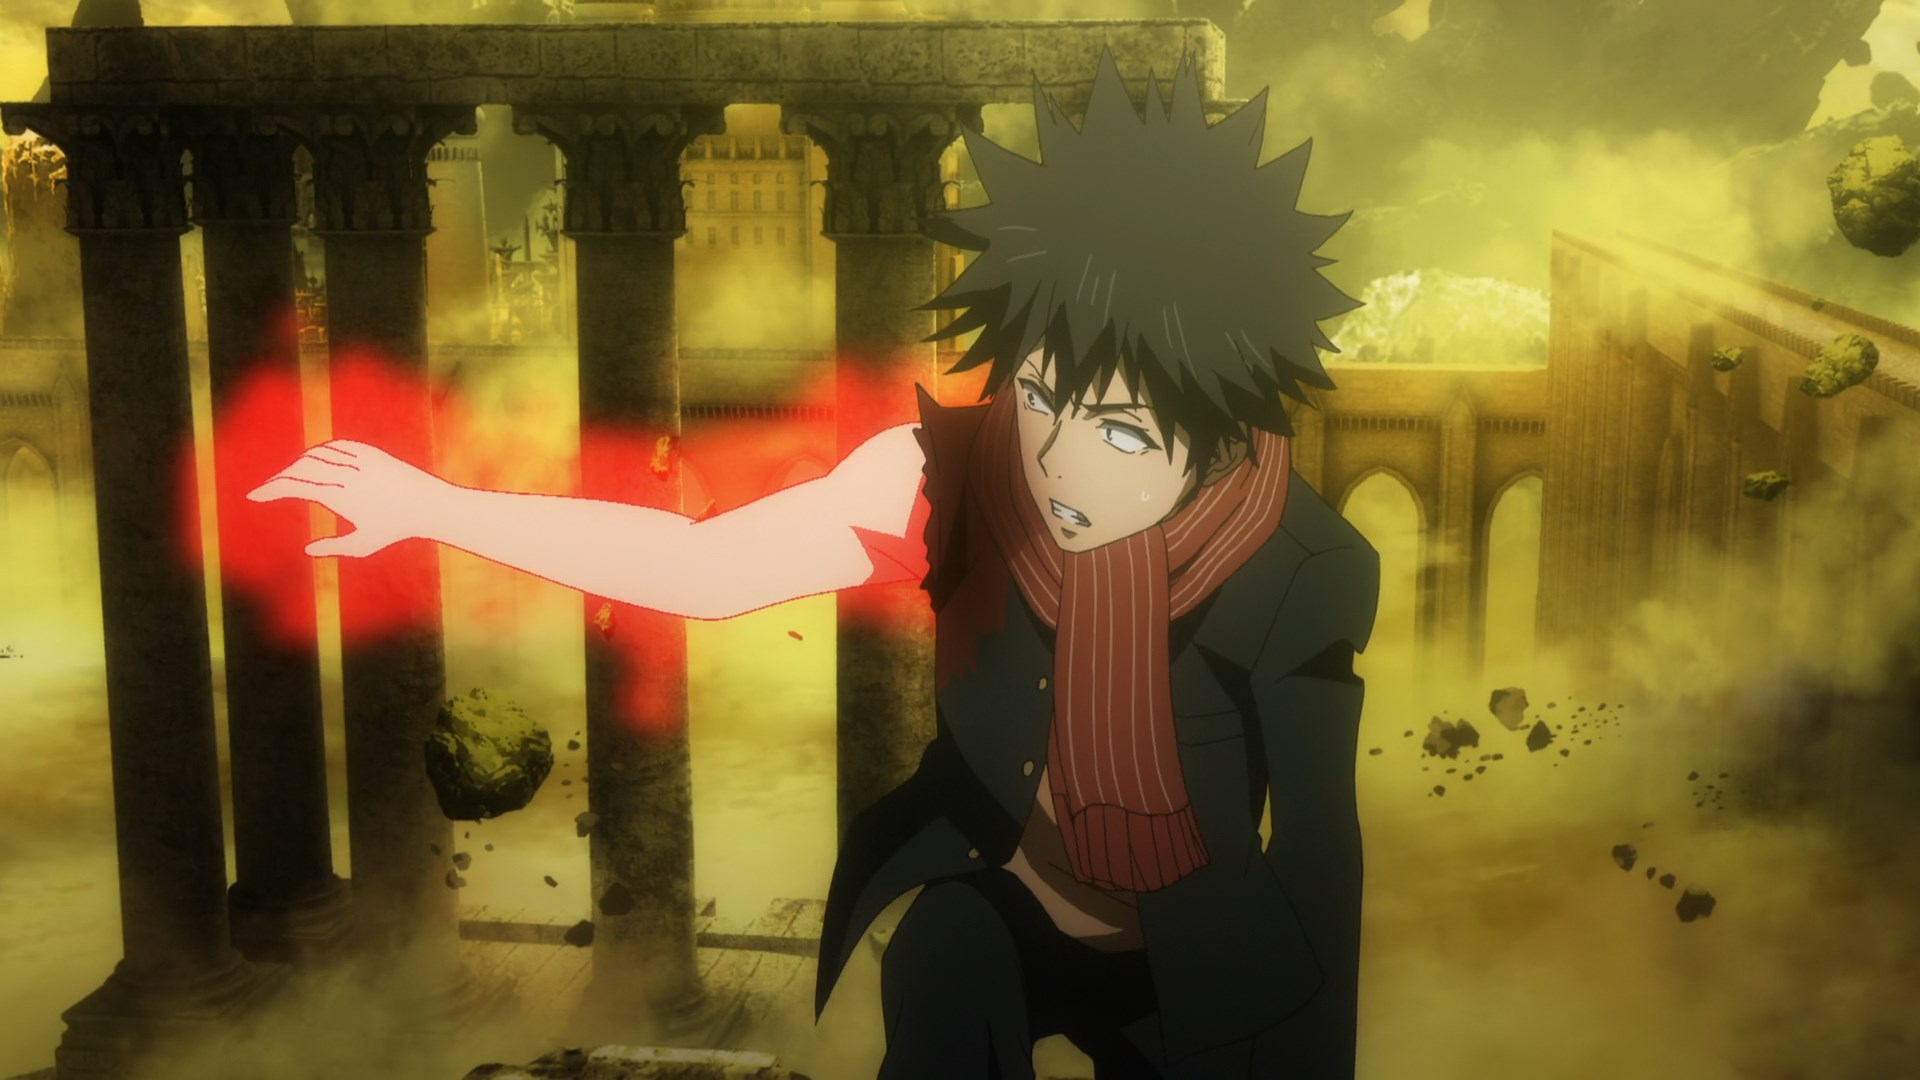 Featured image for What is inside Touma's right hand?